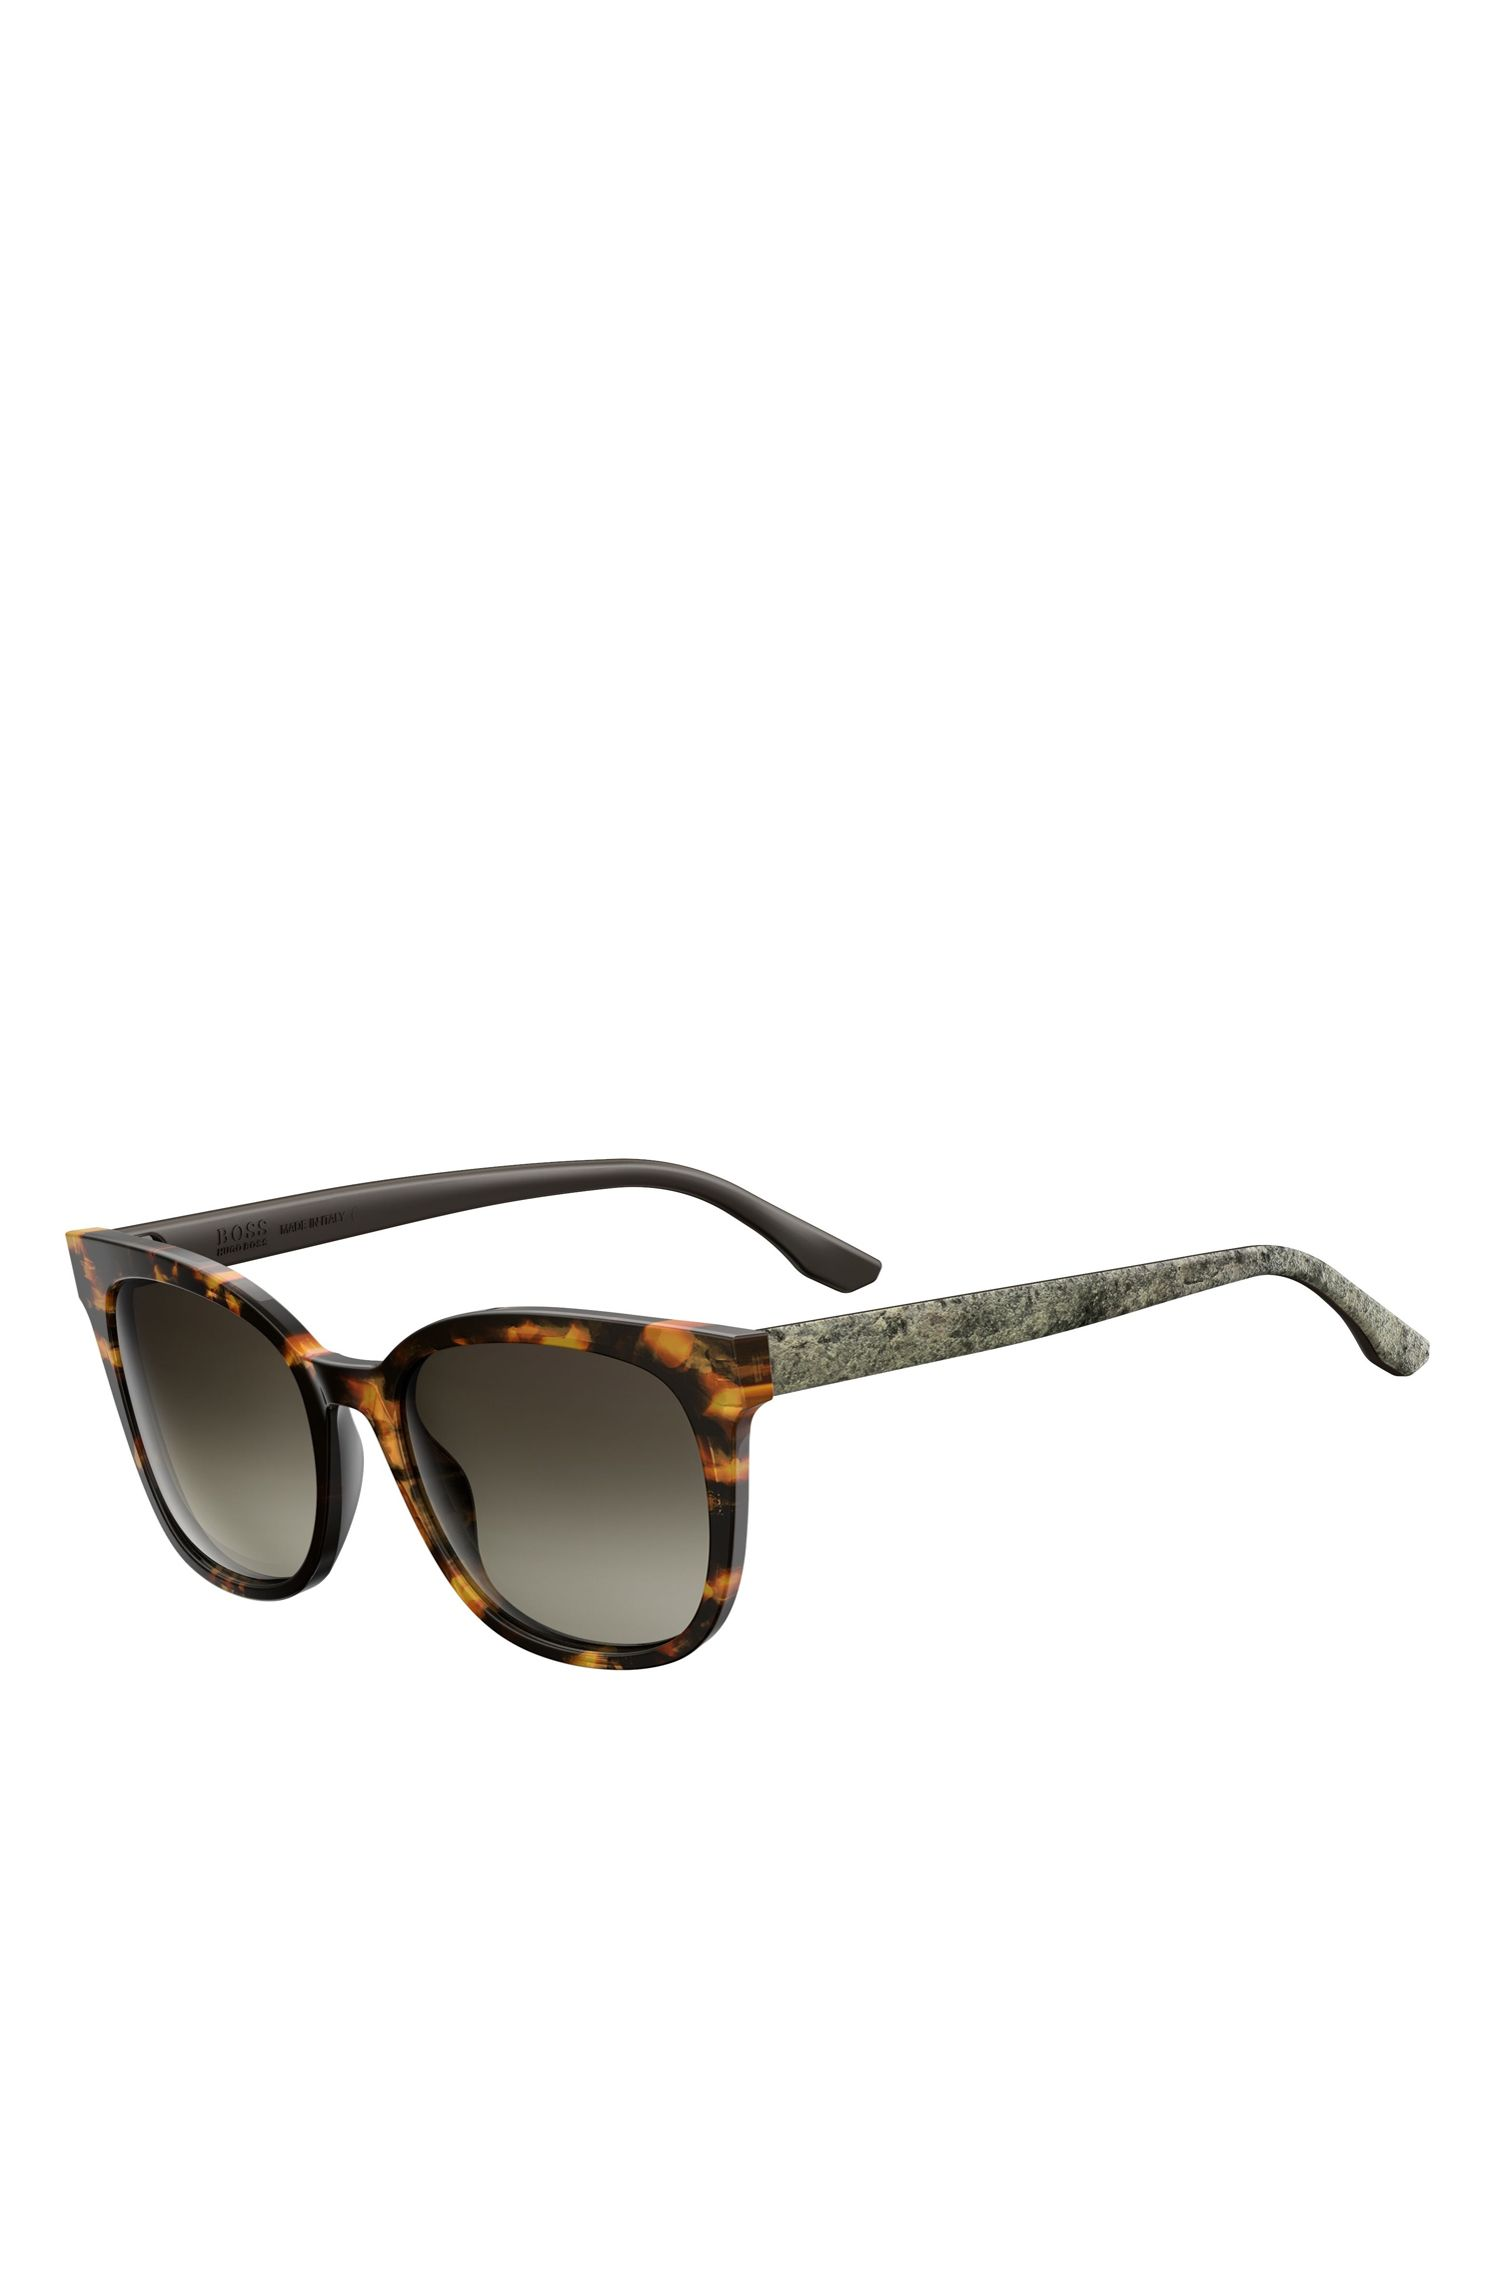 Tortoiseshell Acetate Round Sunglasses | BOSS 0893S, Assorted-Pre-Pack